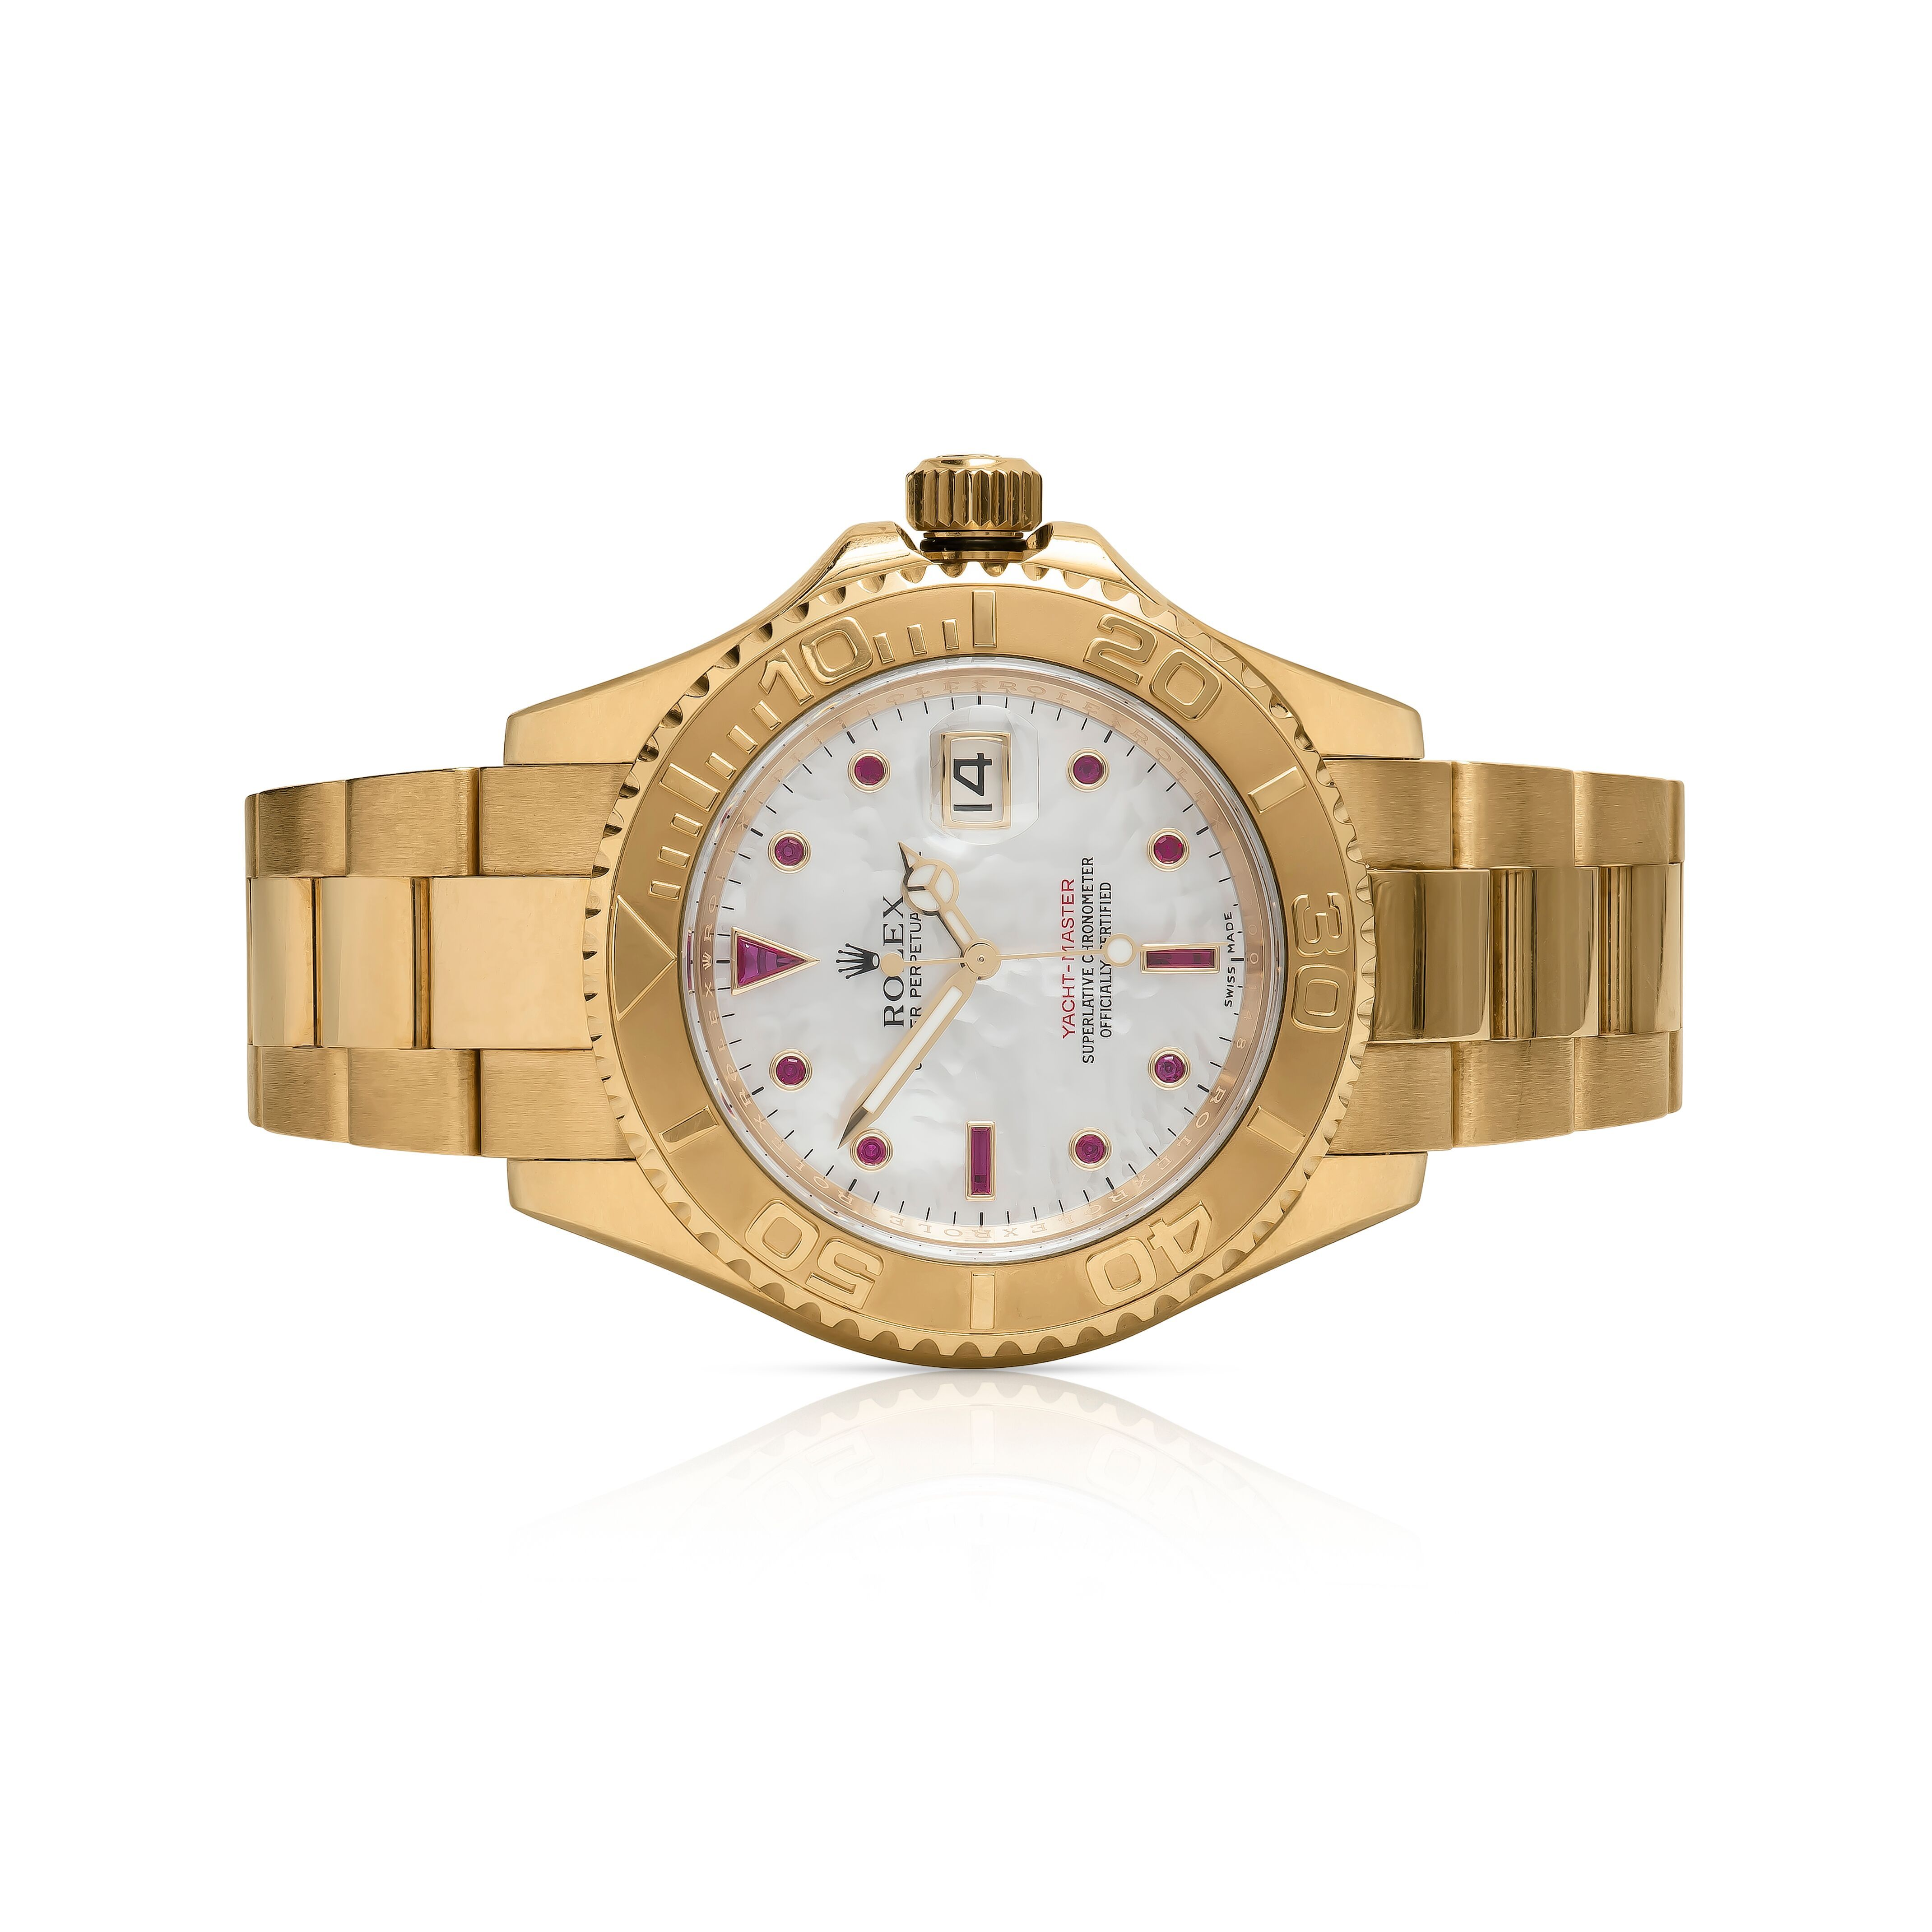 Rolex Oyster Perpetual 40mm Men's Yacht-Master 18k Yellow Gold with Mother Of Pearl Dial & Ruby Dial Watch